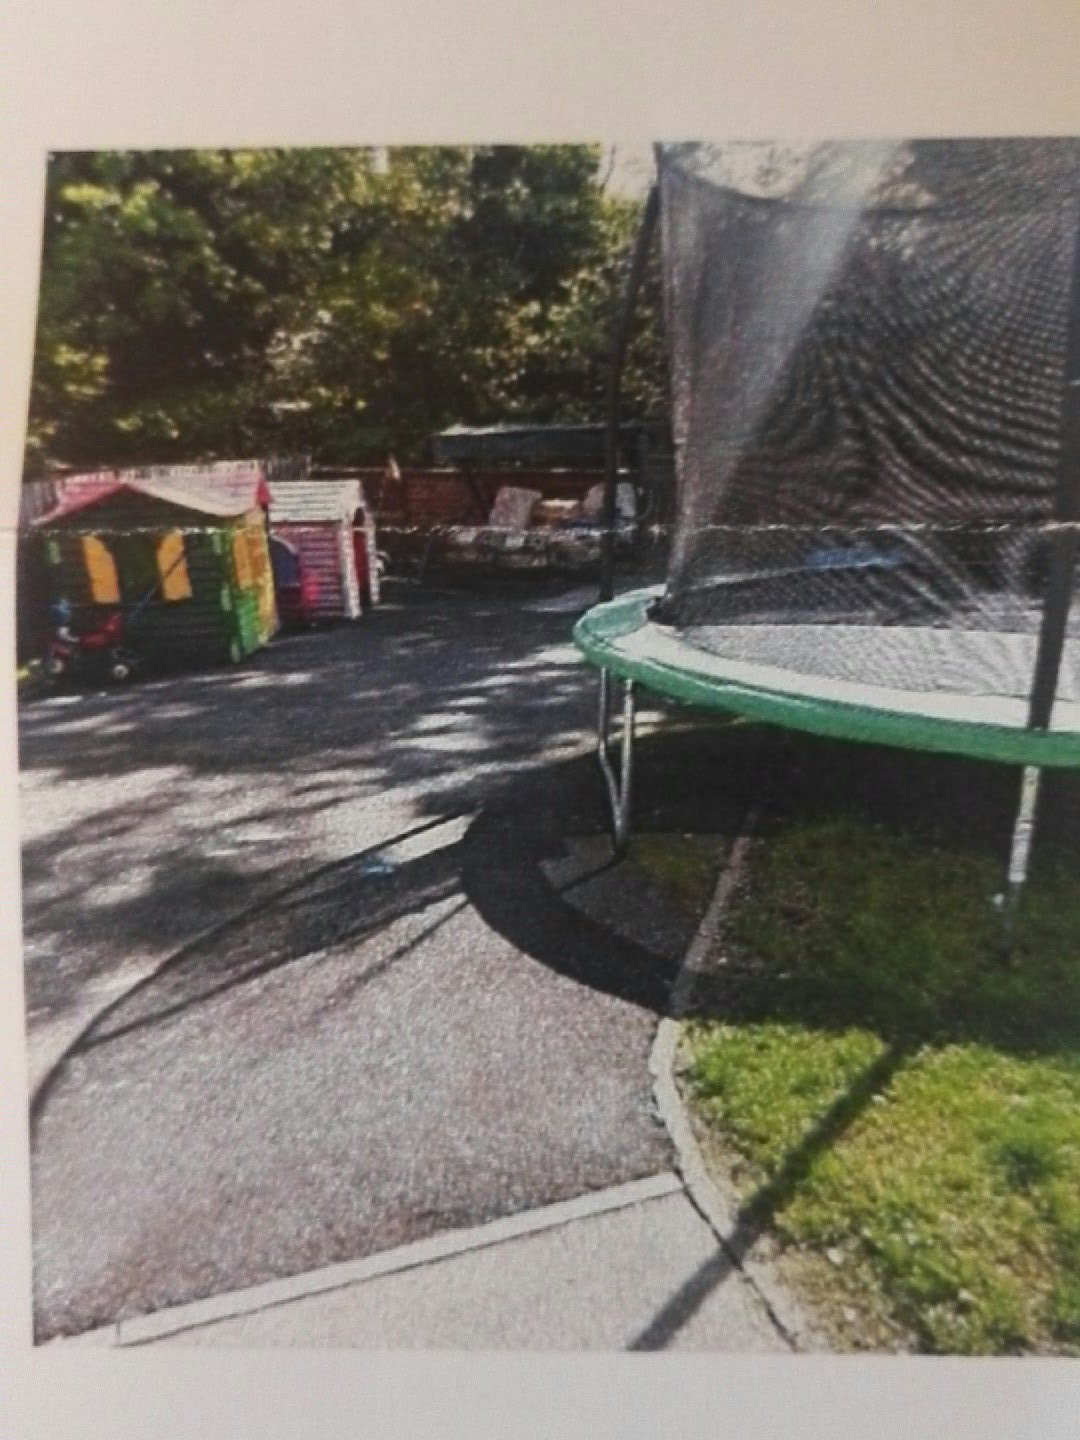 The trampoline in question